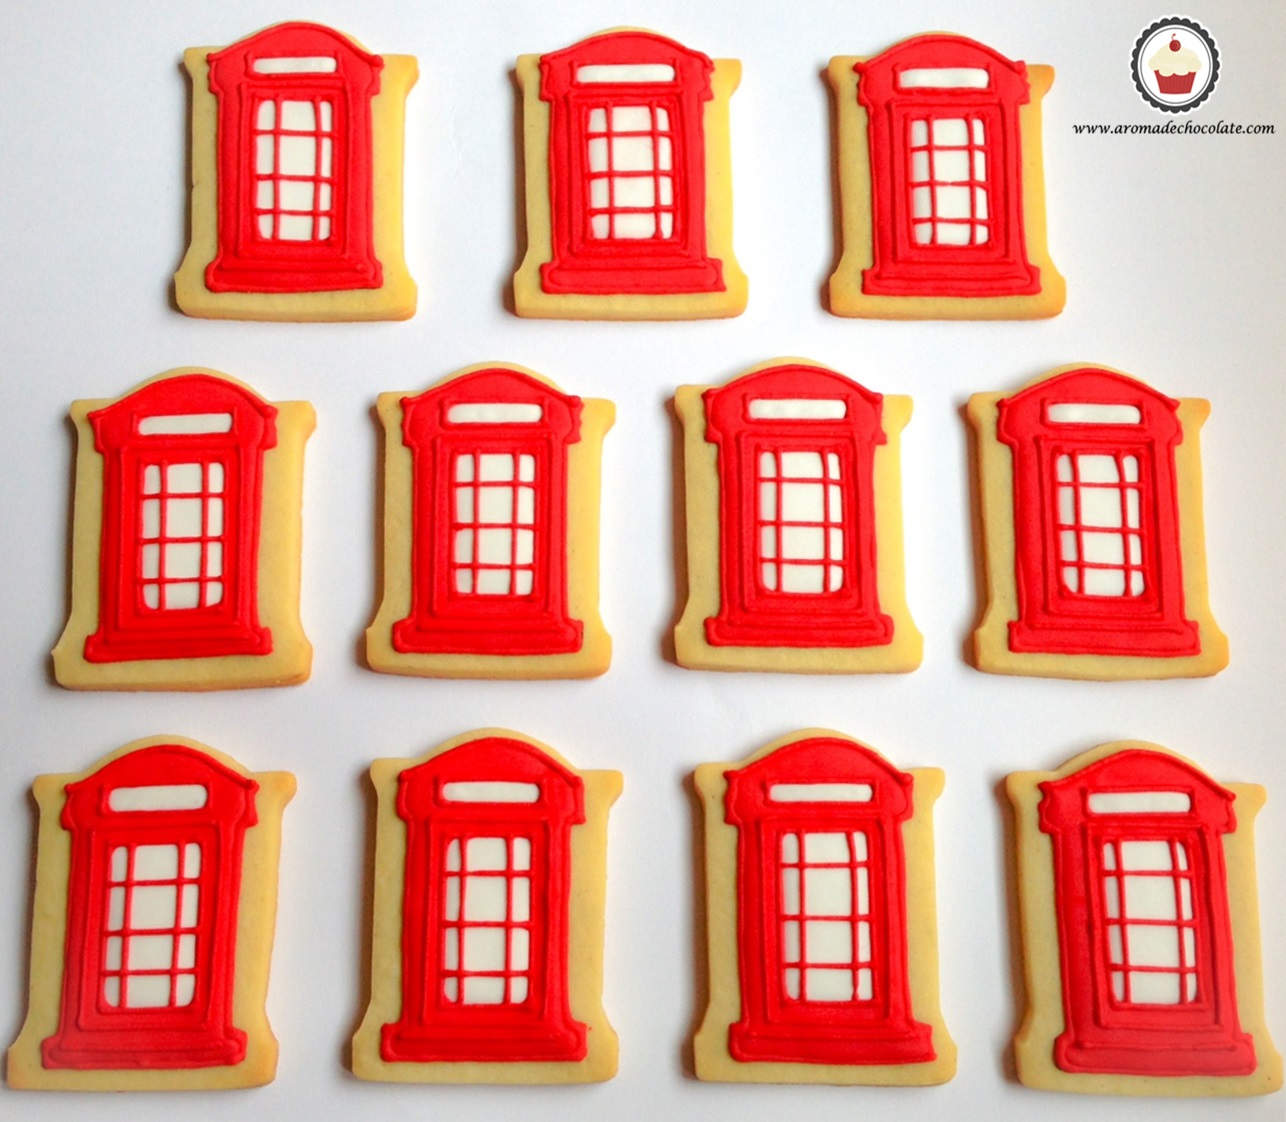 Galletas London. Aroma de chocolate.